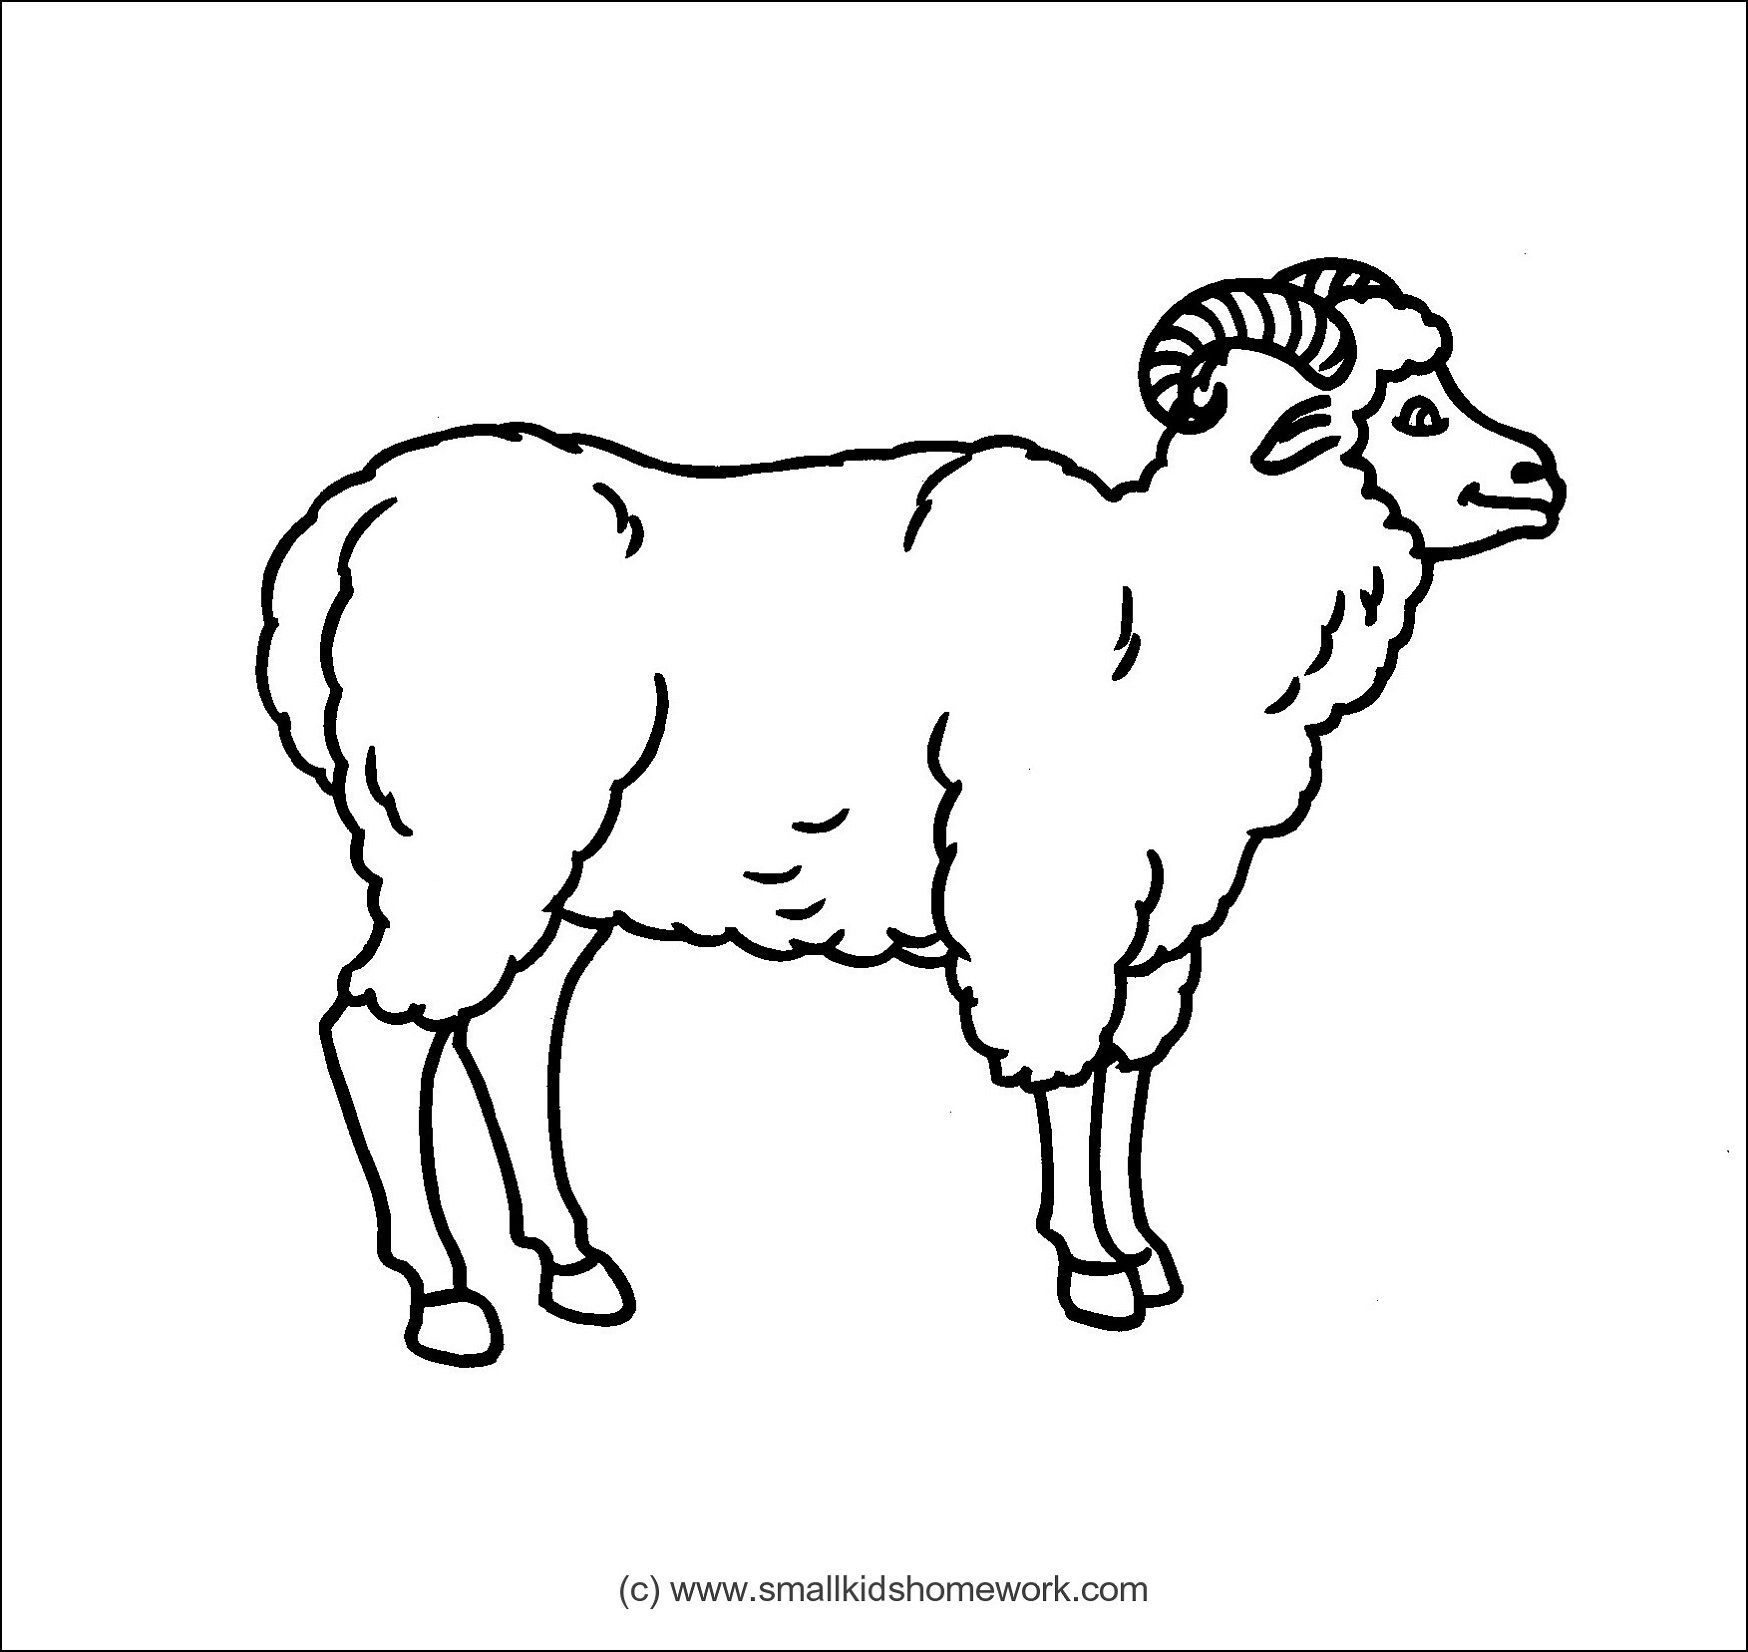 sheep outline drawing at getdrawings com free for personal use